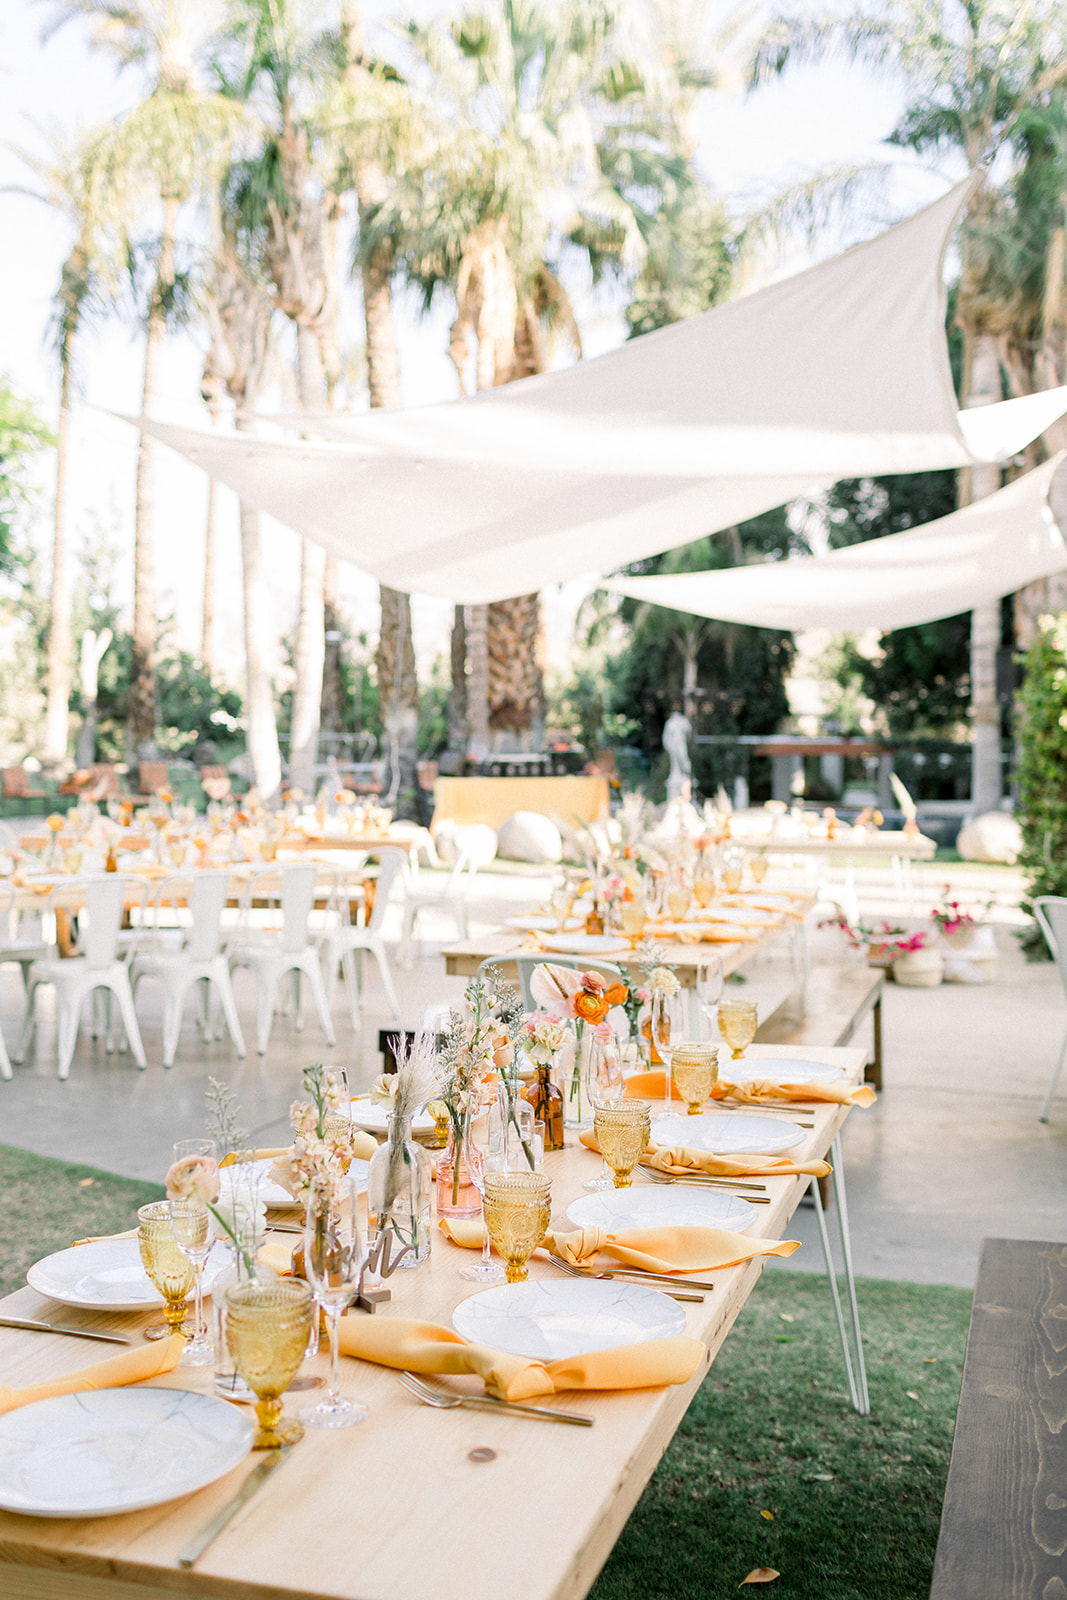 Colorful bohemian wedding in Palm Springs by Lucky Day Events Co.